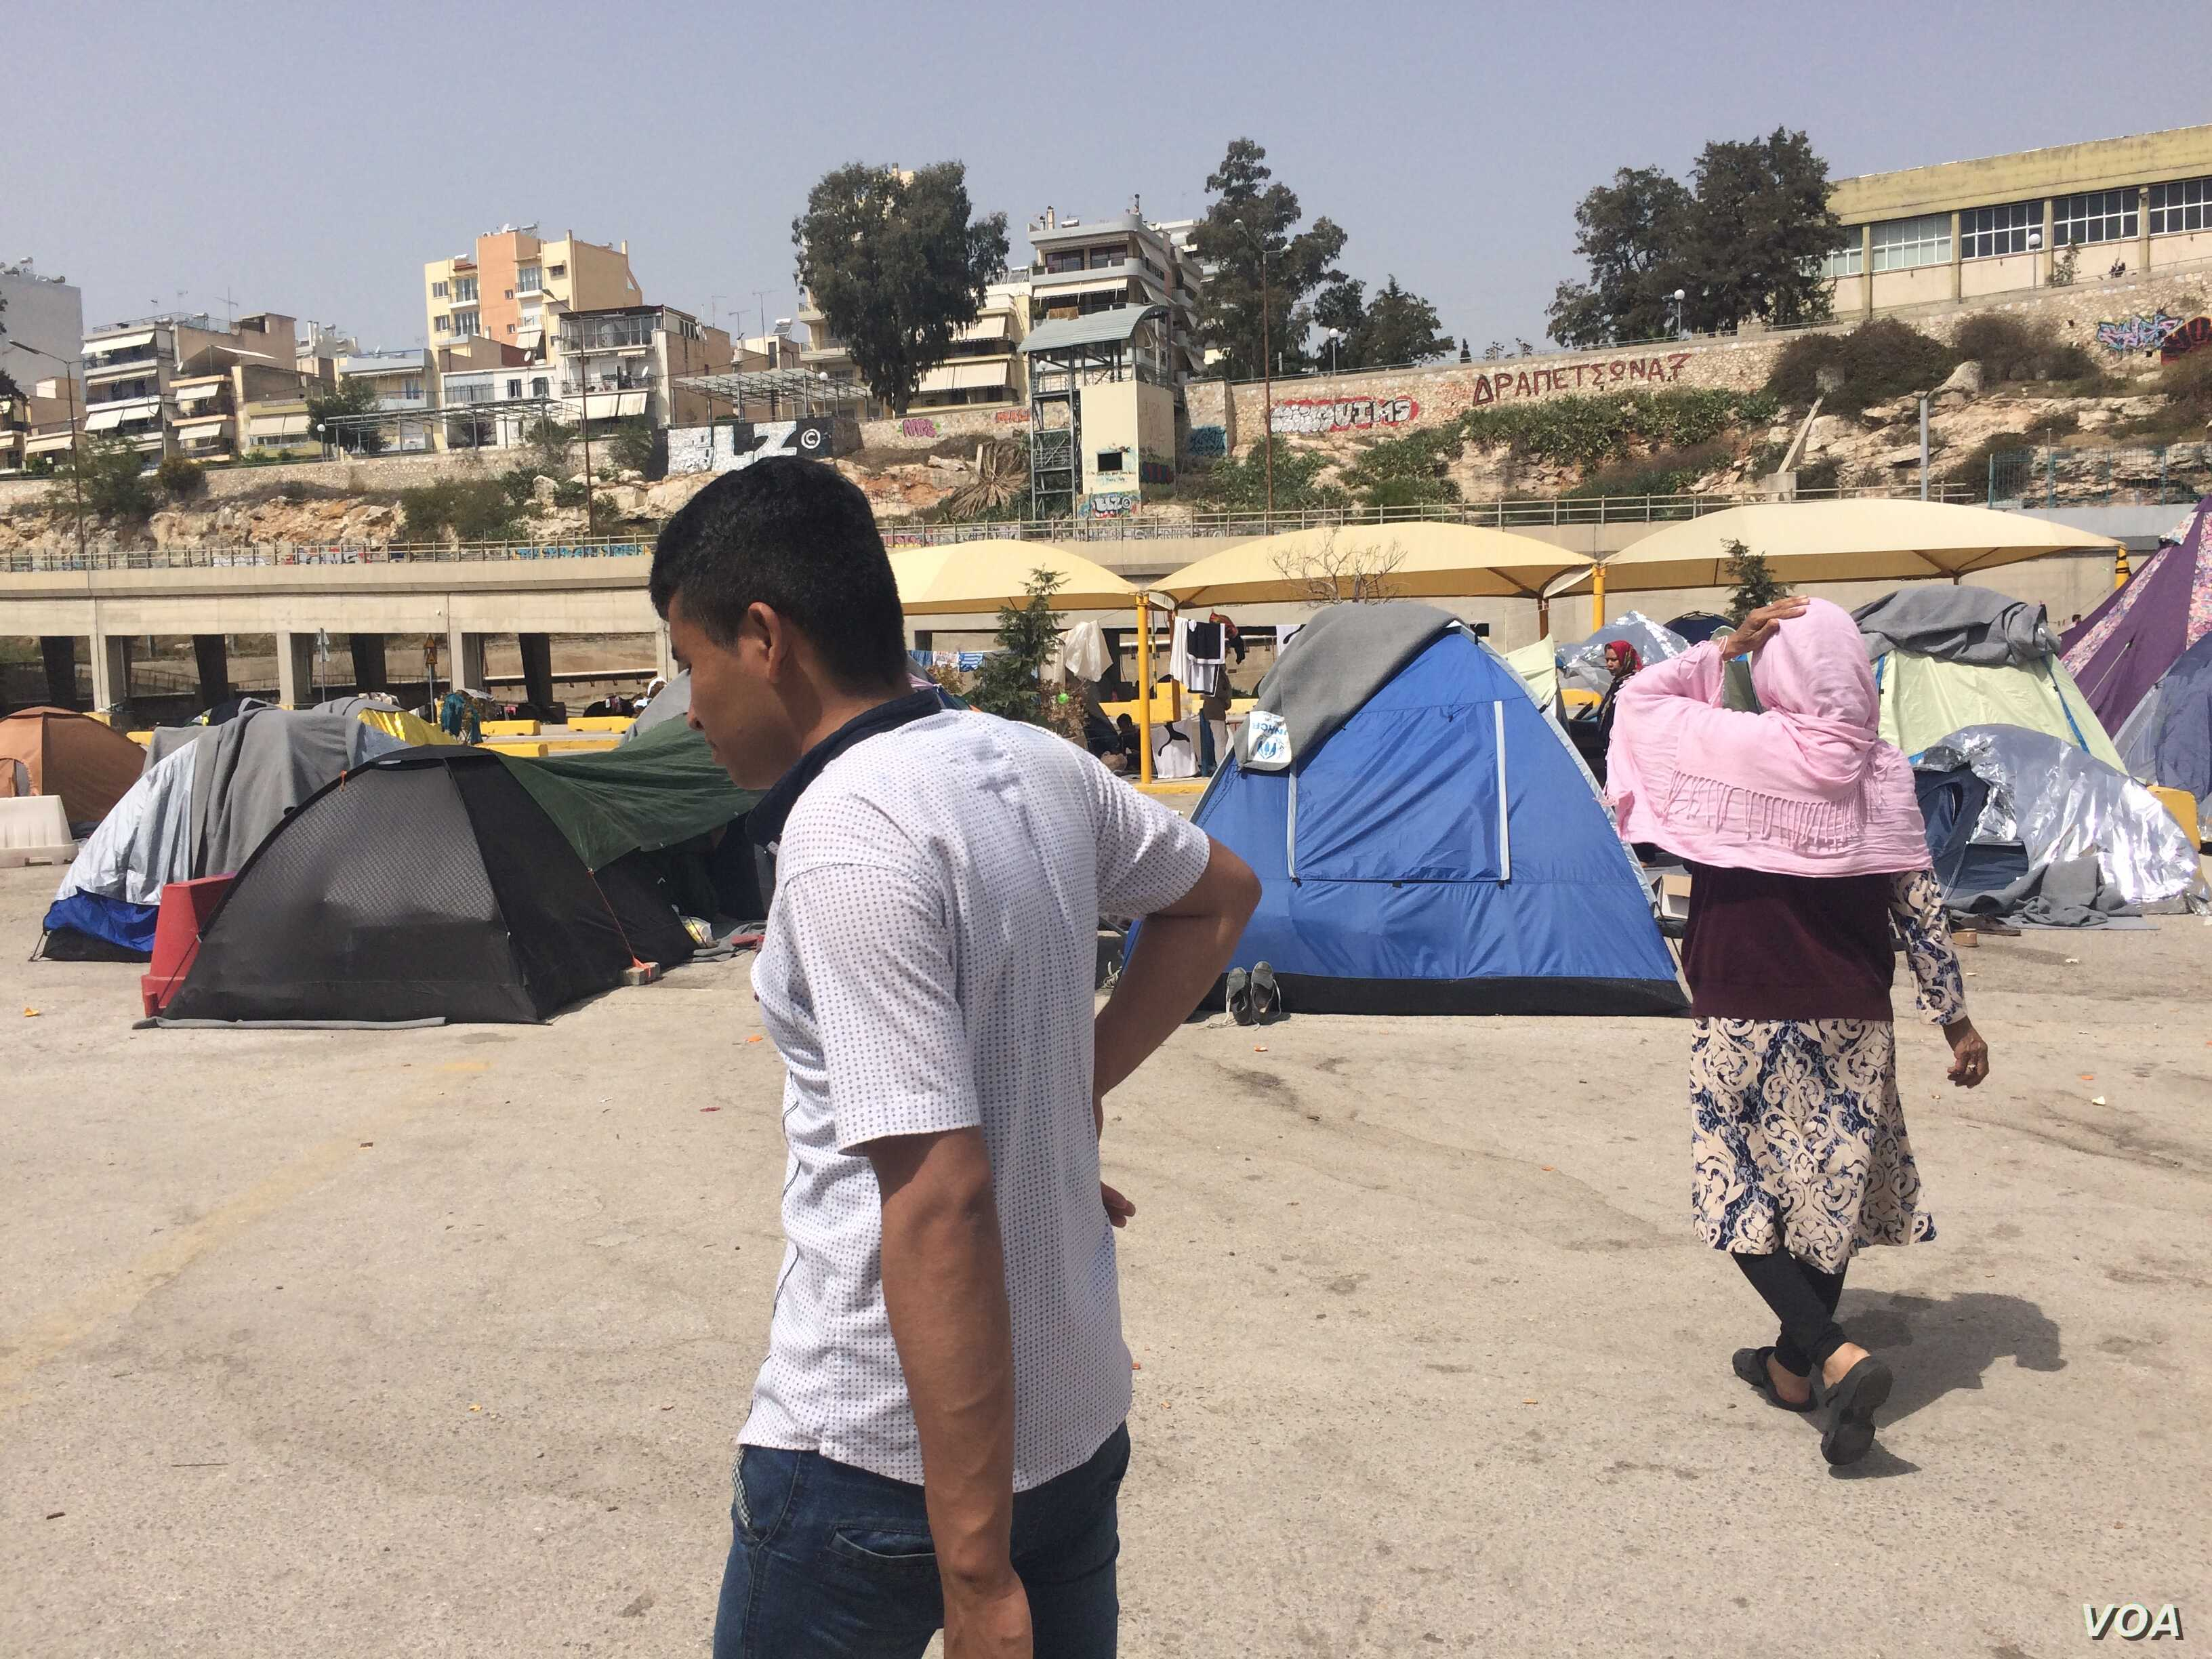 """The Greek government says it will close settlements on the port that house thousands of people.  Many say they don't plan to go to """"official"""" camps for fear of worse conditions or being detained, taken in Athens, Greece on April, 8, 2016. (H. Murdock..."""